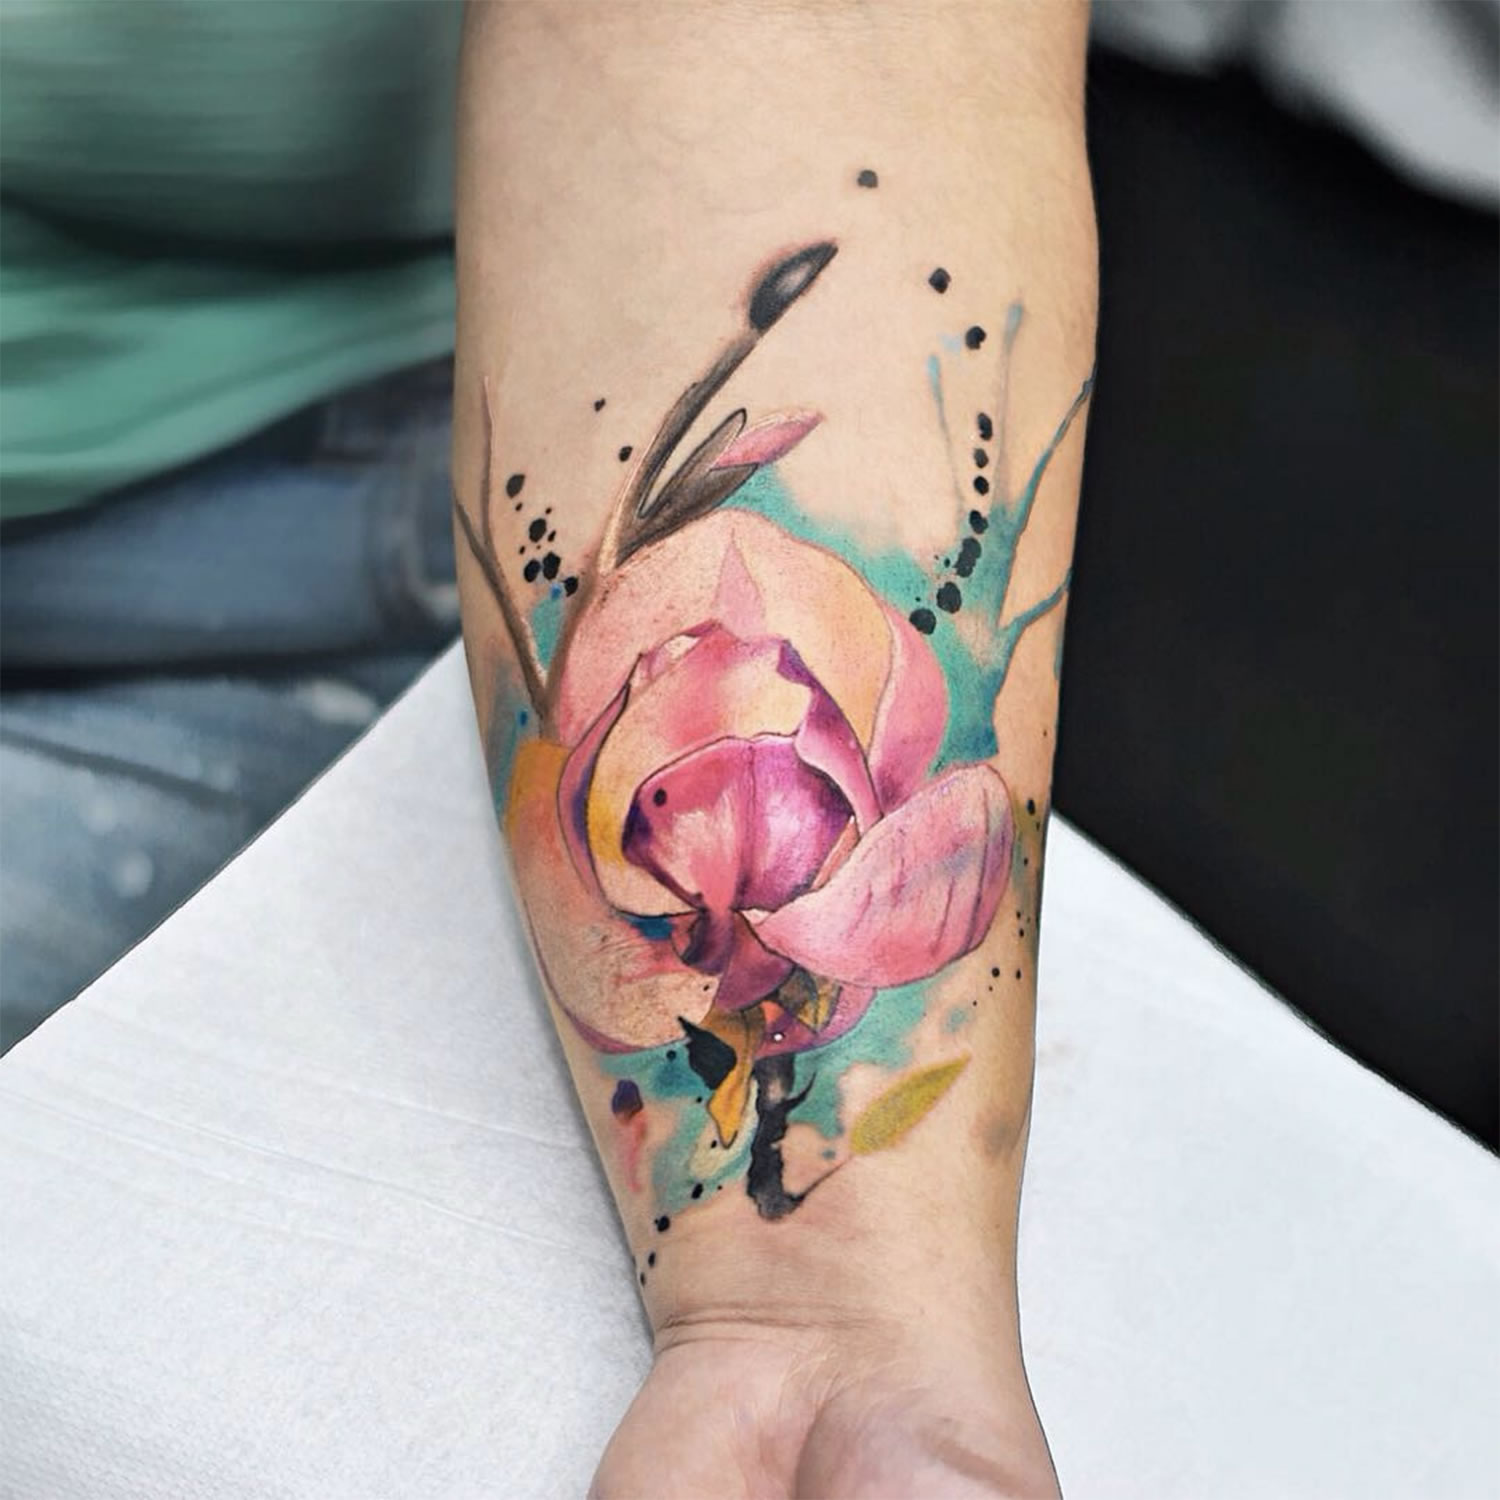 flower tattoo, watercolor style